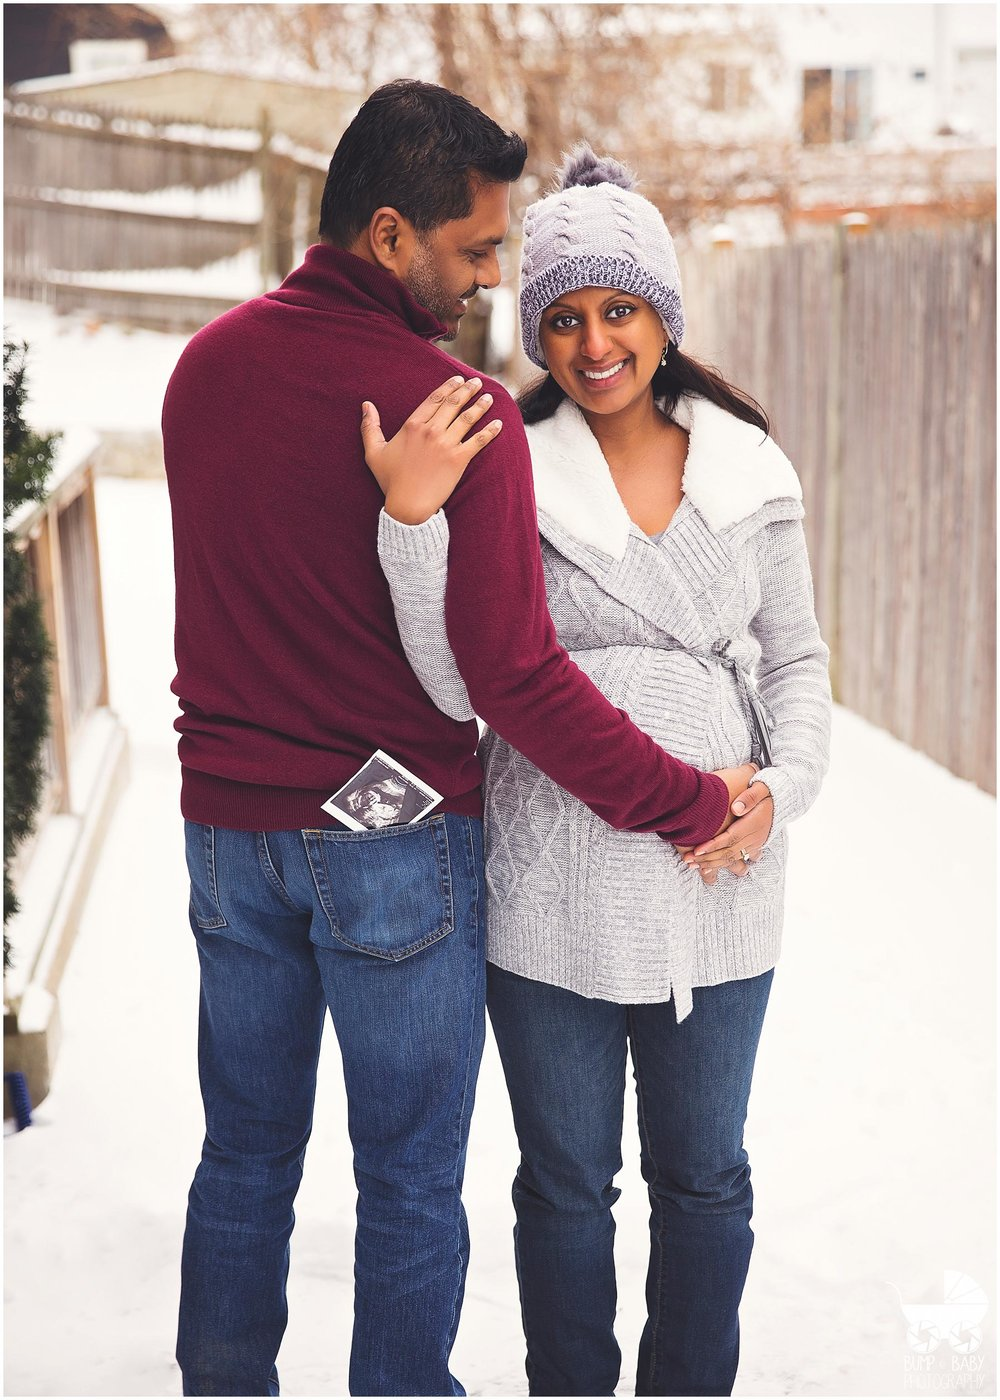 Maternity-Session-outdoor-in-snow.jpg